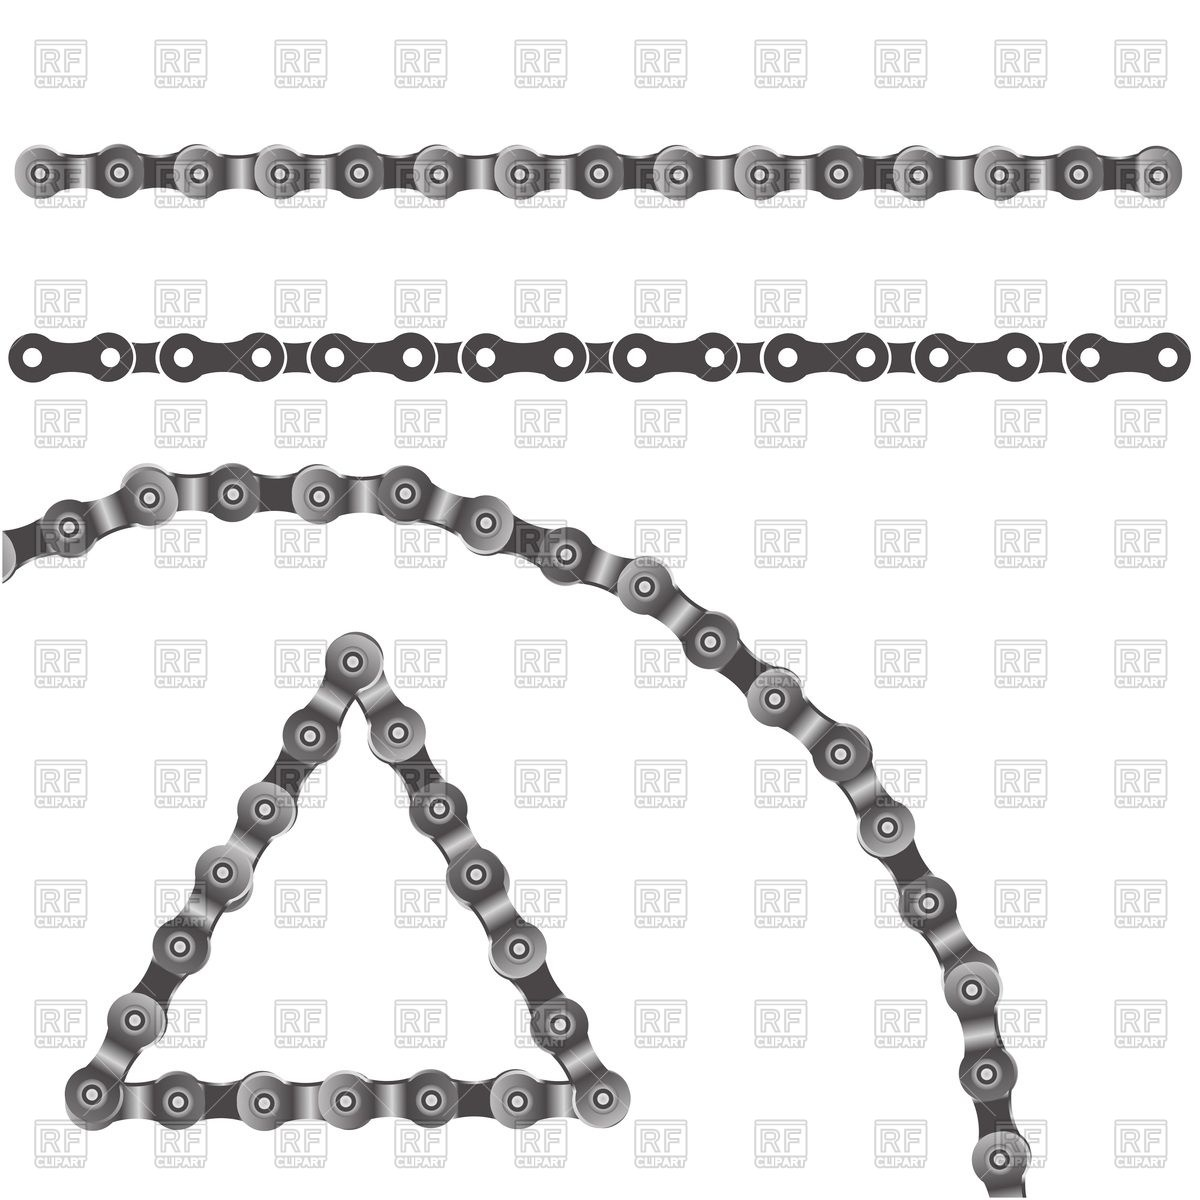 1200x1200 Colorful Illustration With Bicycle Chain On A White Background For